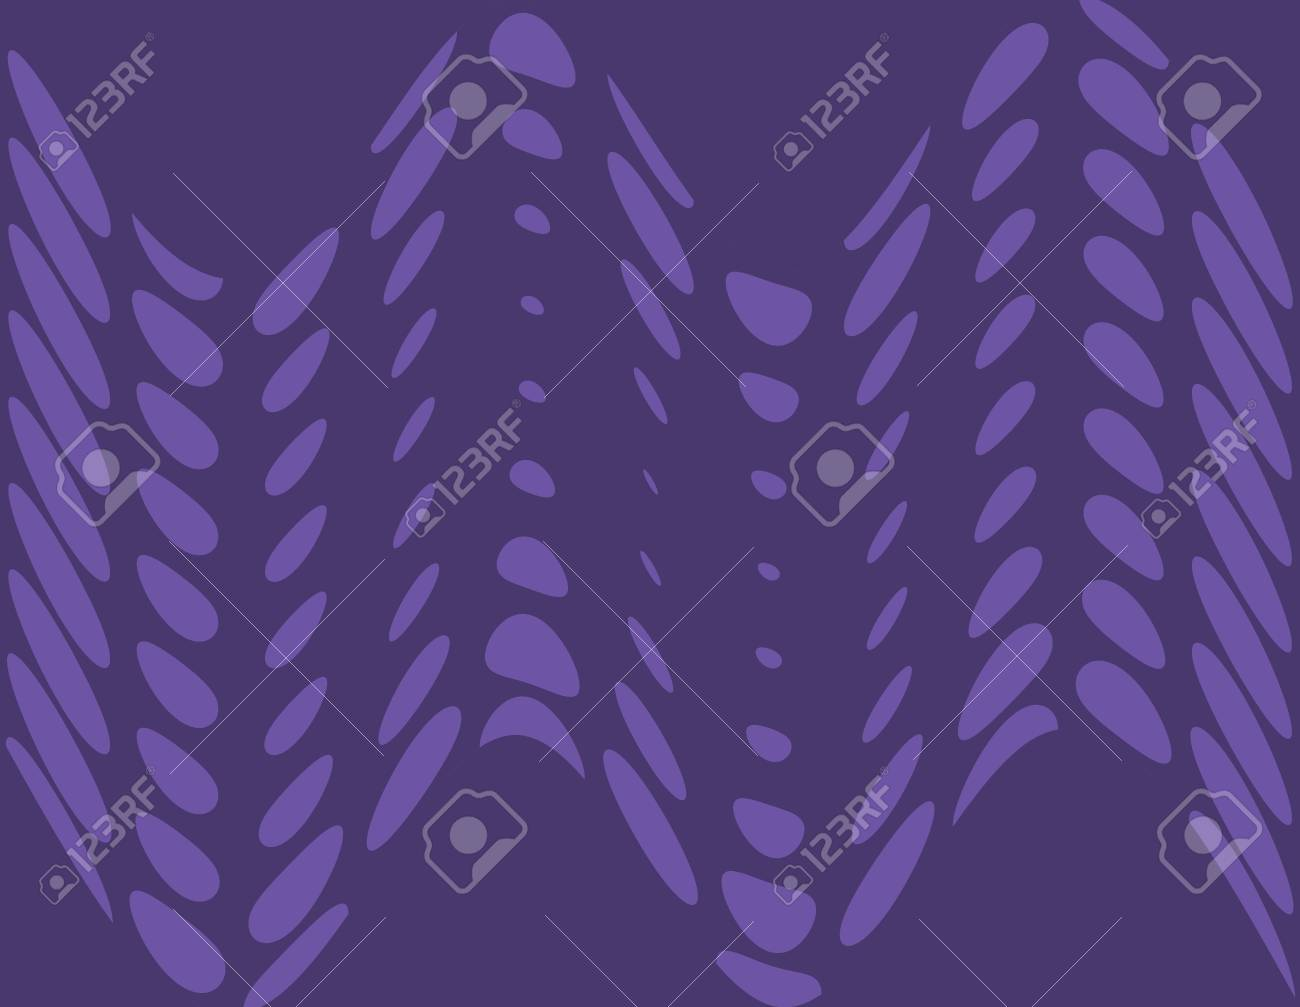 Purple Polka Dots Art Design Abstract Stock Photo - 14112228